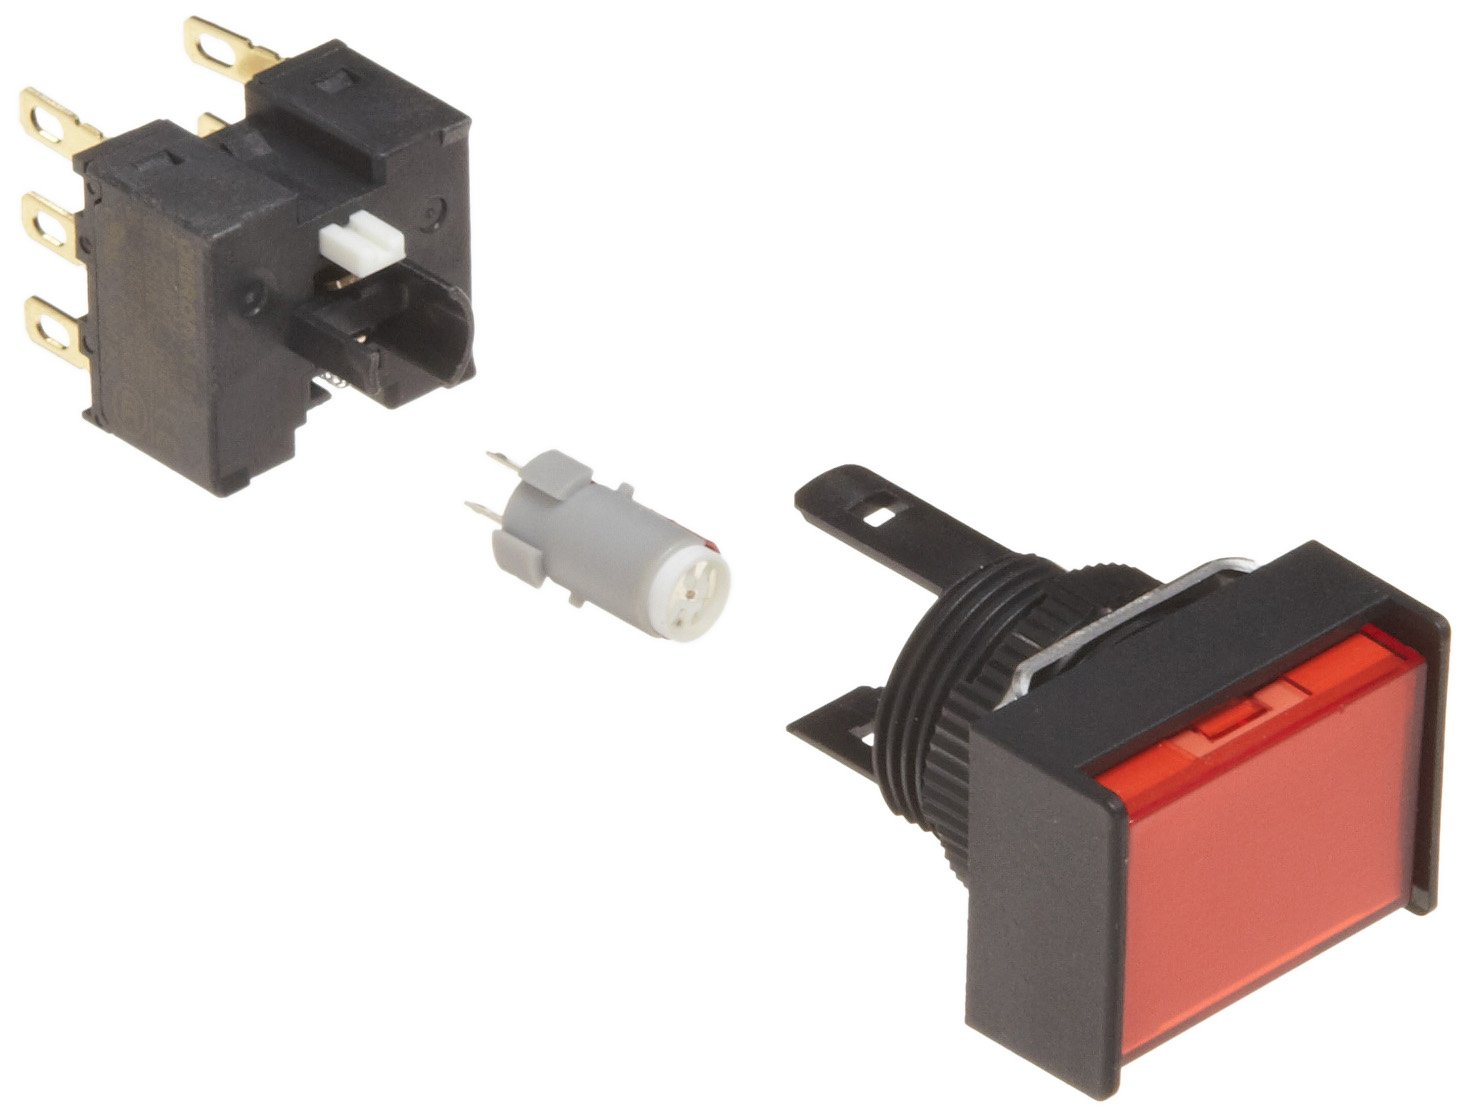 Omron A165L-JRM-5D-2 Two Way Guard Type Pushbutton and Switch, Solder Terminal, IP65 Oil-Resistant, 16mm Mounting Aperture, LED Lighted, Momentary Operation, Rectangular, Red, 5 VDC Rated Voltage, Double Pole Double Throw Contacts